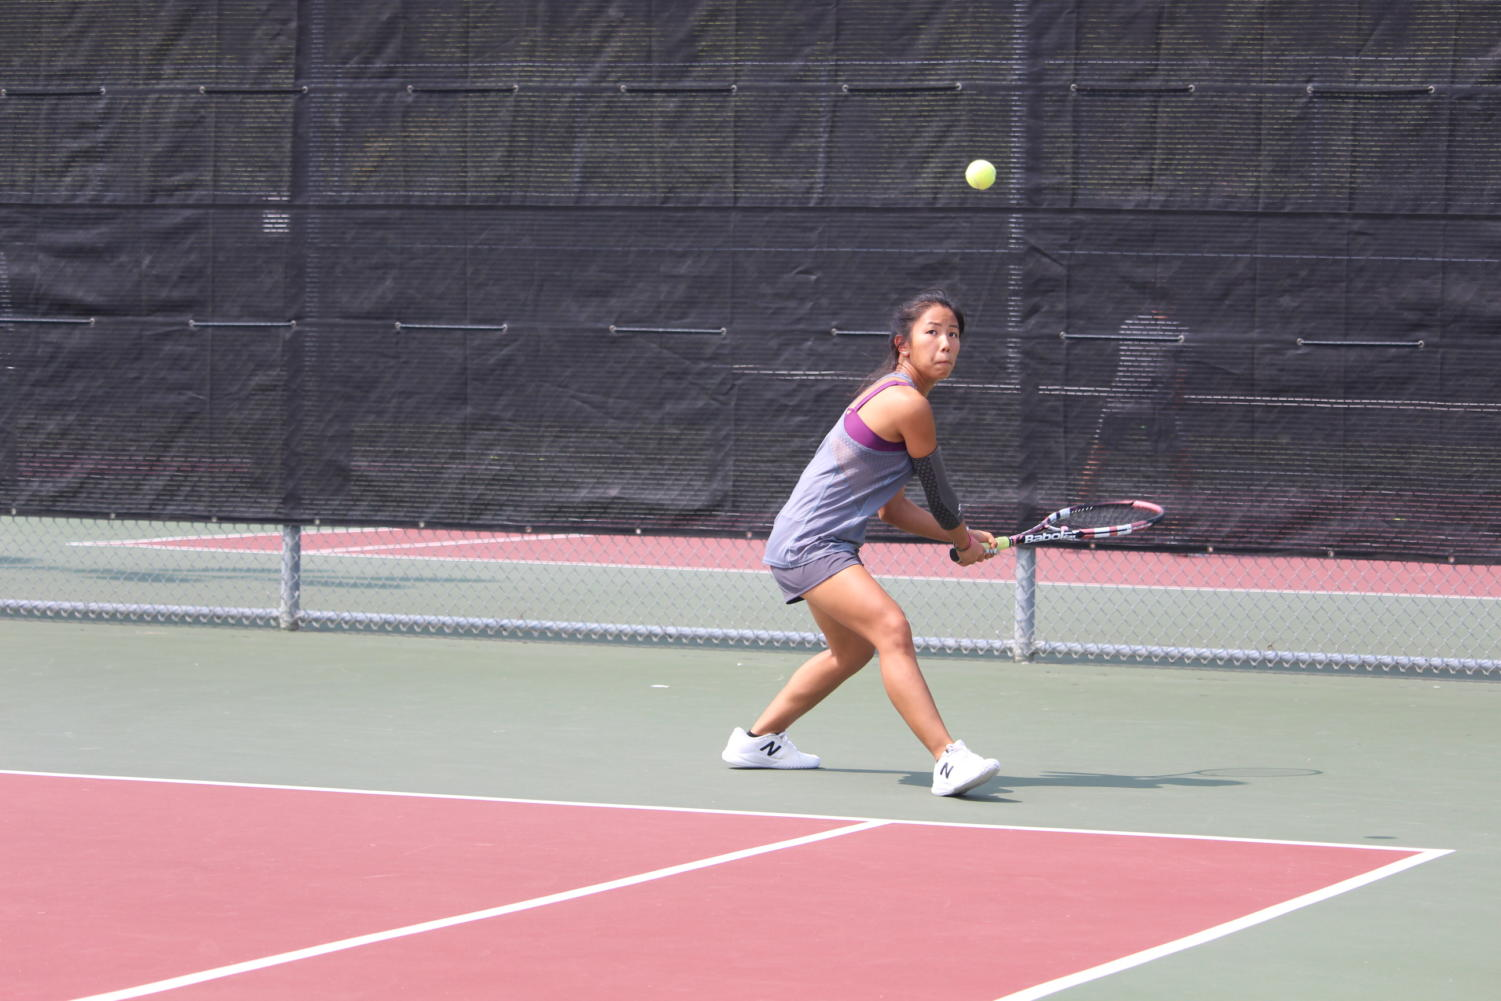 Coppell senior Sydney Nguyen returns a shot during practice earlier this season. The tennis team is facing Marcus tomorrow with their finalized doubles lineup, and is expecting a challenging match.